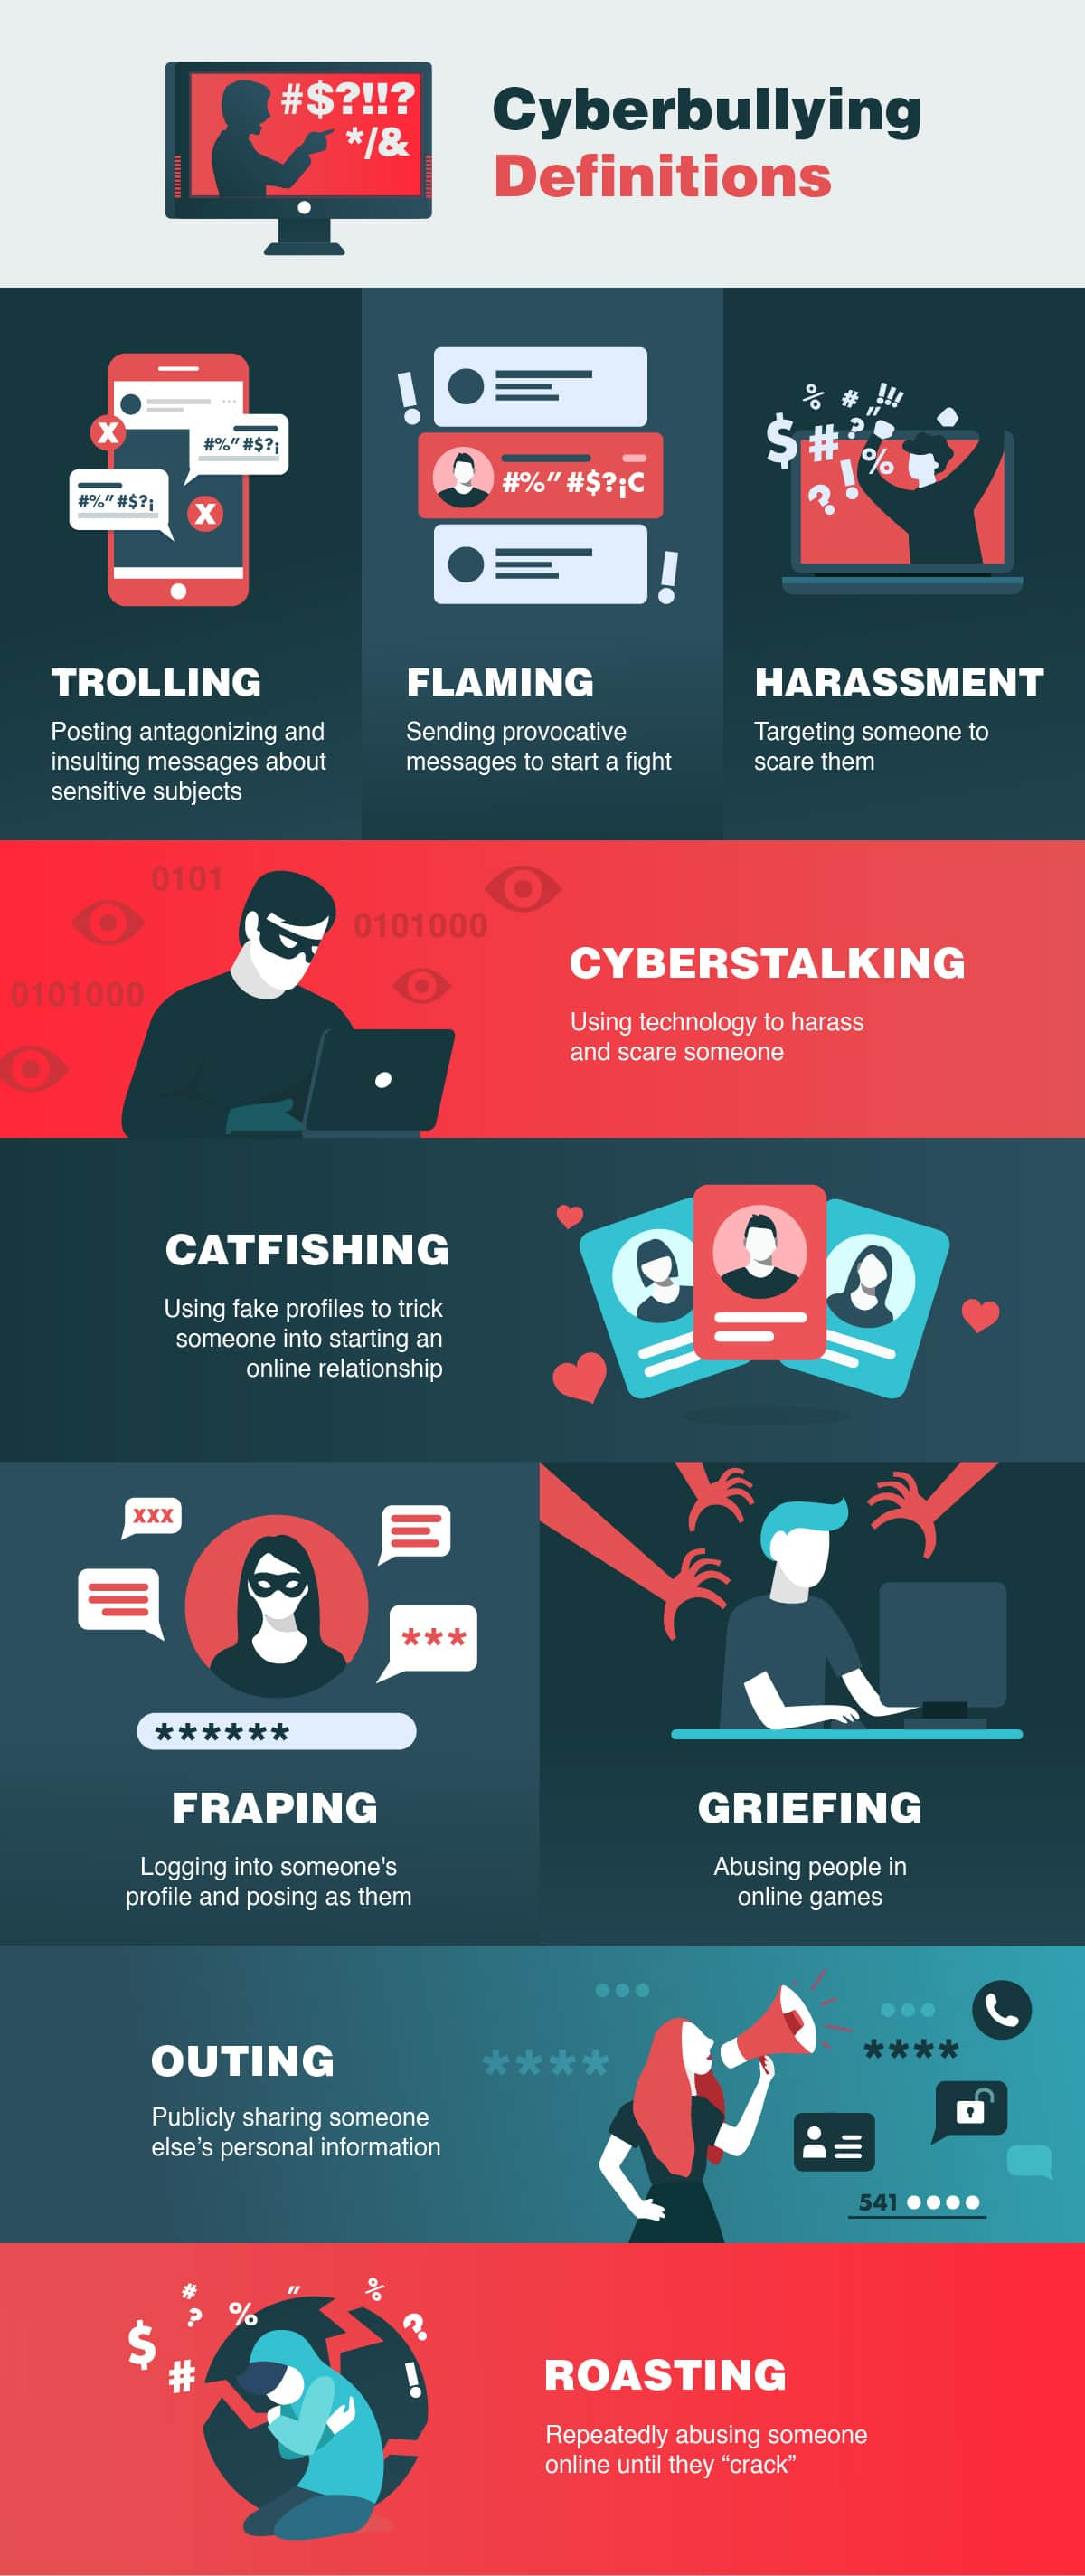 Teacher S Guide To Cybersecurity Everything You Need To